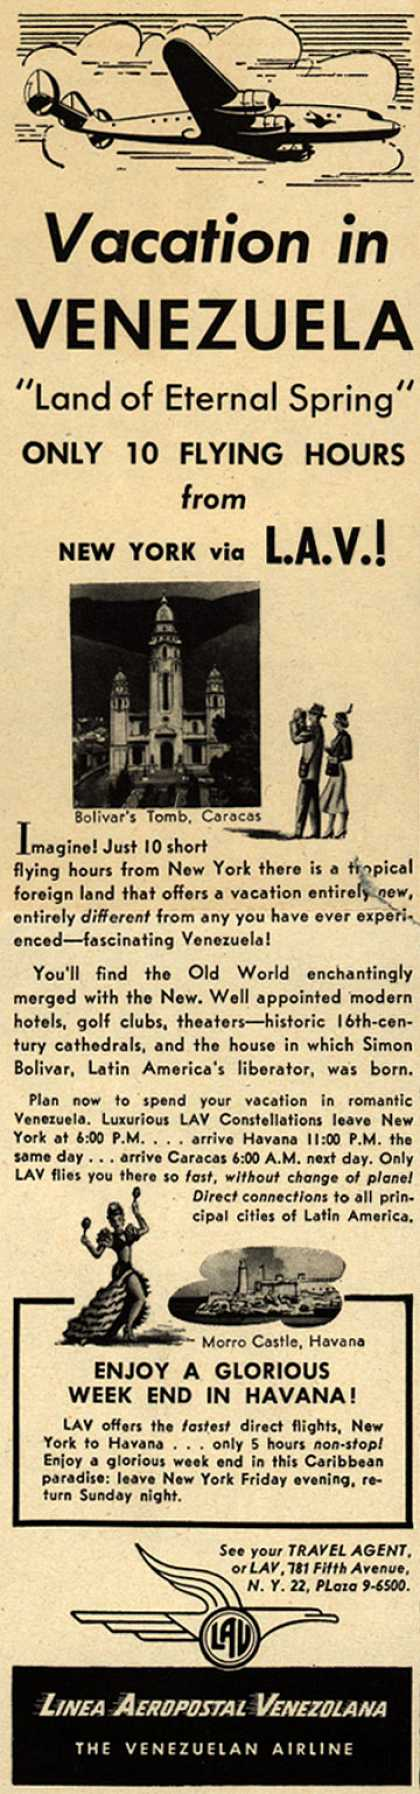 Linea Aeropostal Venezolana- The Venezuelan Airline's Venezuela – Vacation in VENEZUELA (1949)